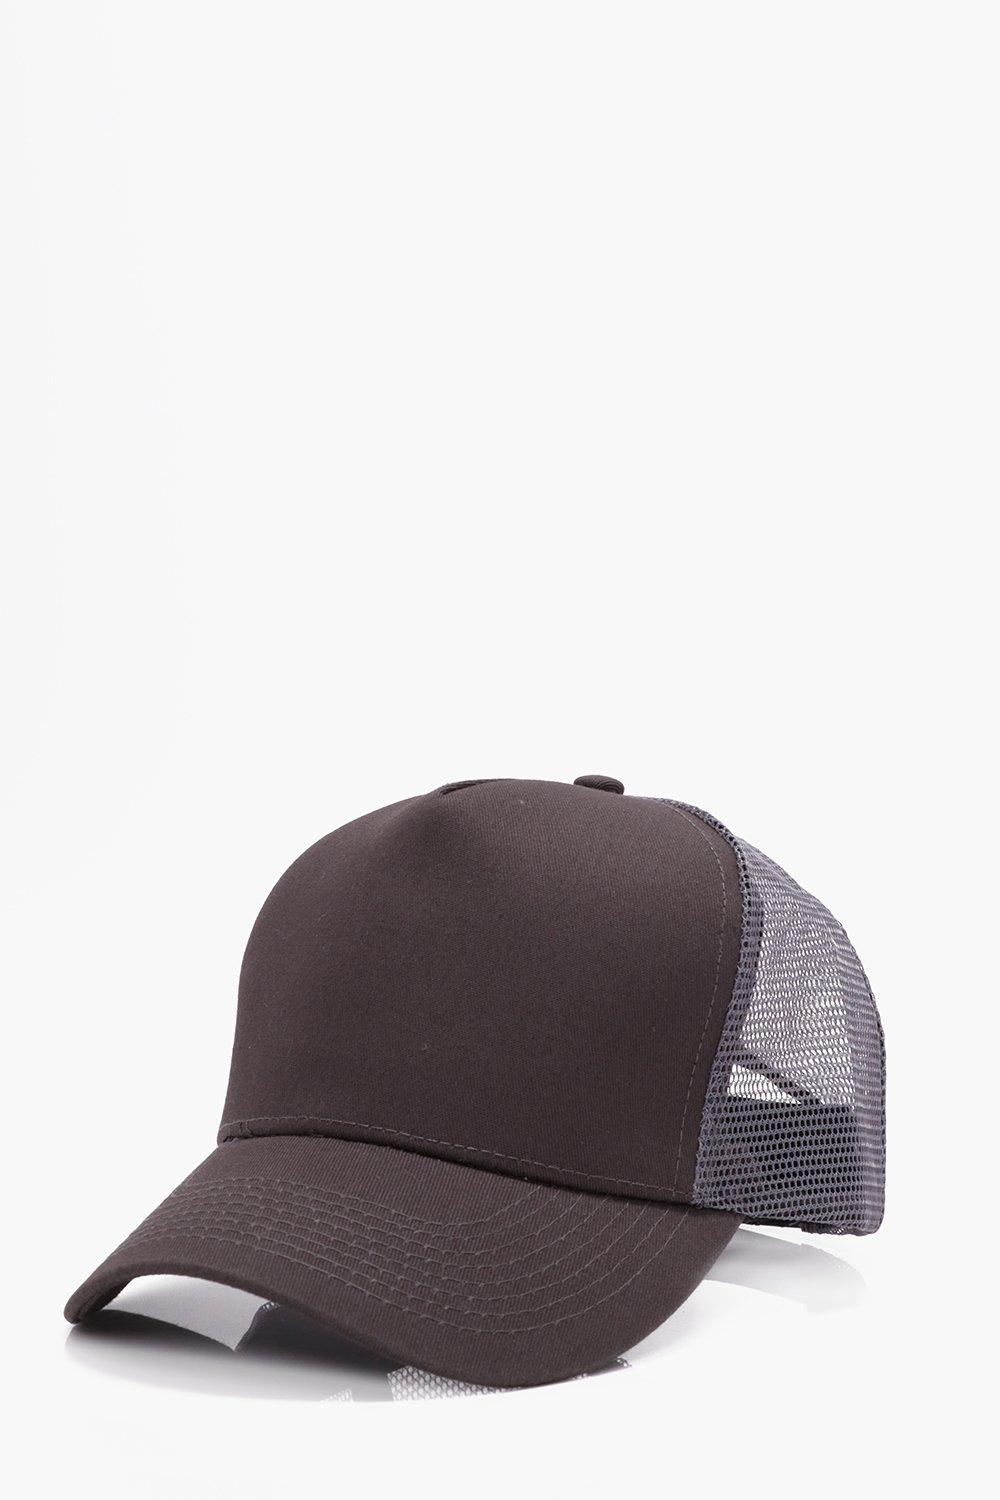 Contrast Trucker - grey - Plain Contrast Trucker -